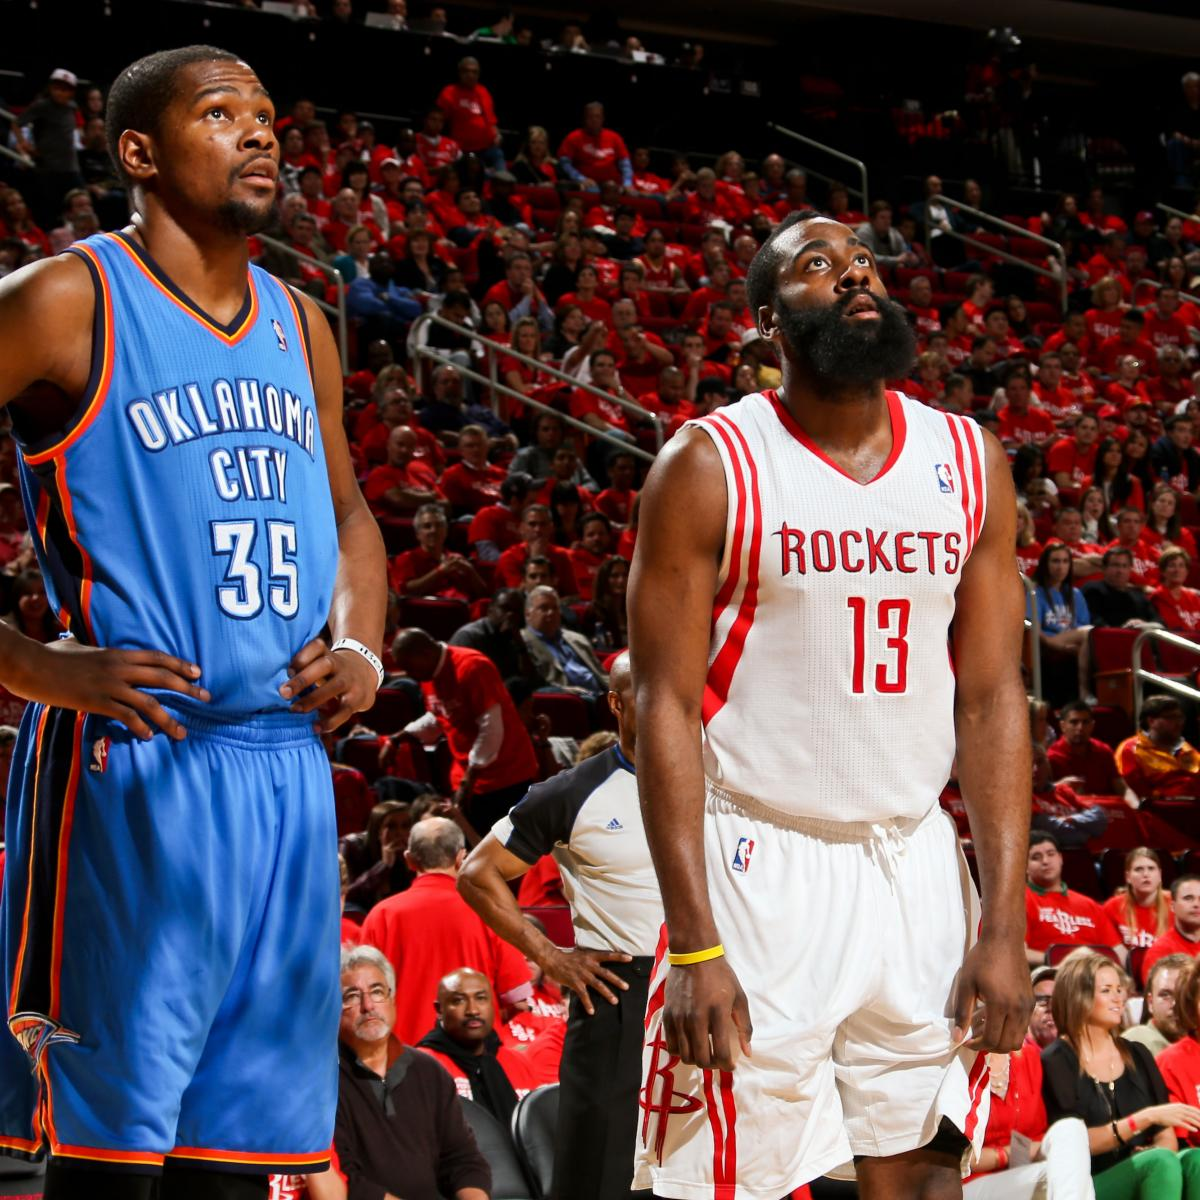 Houston Rockets Vs Okc: Oklahoma City Thunder Vs. Houston Rockets: Full Preview